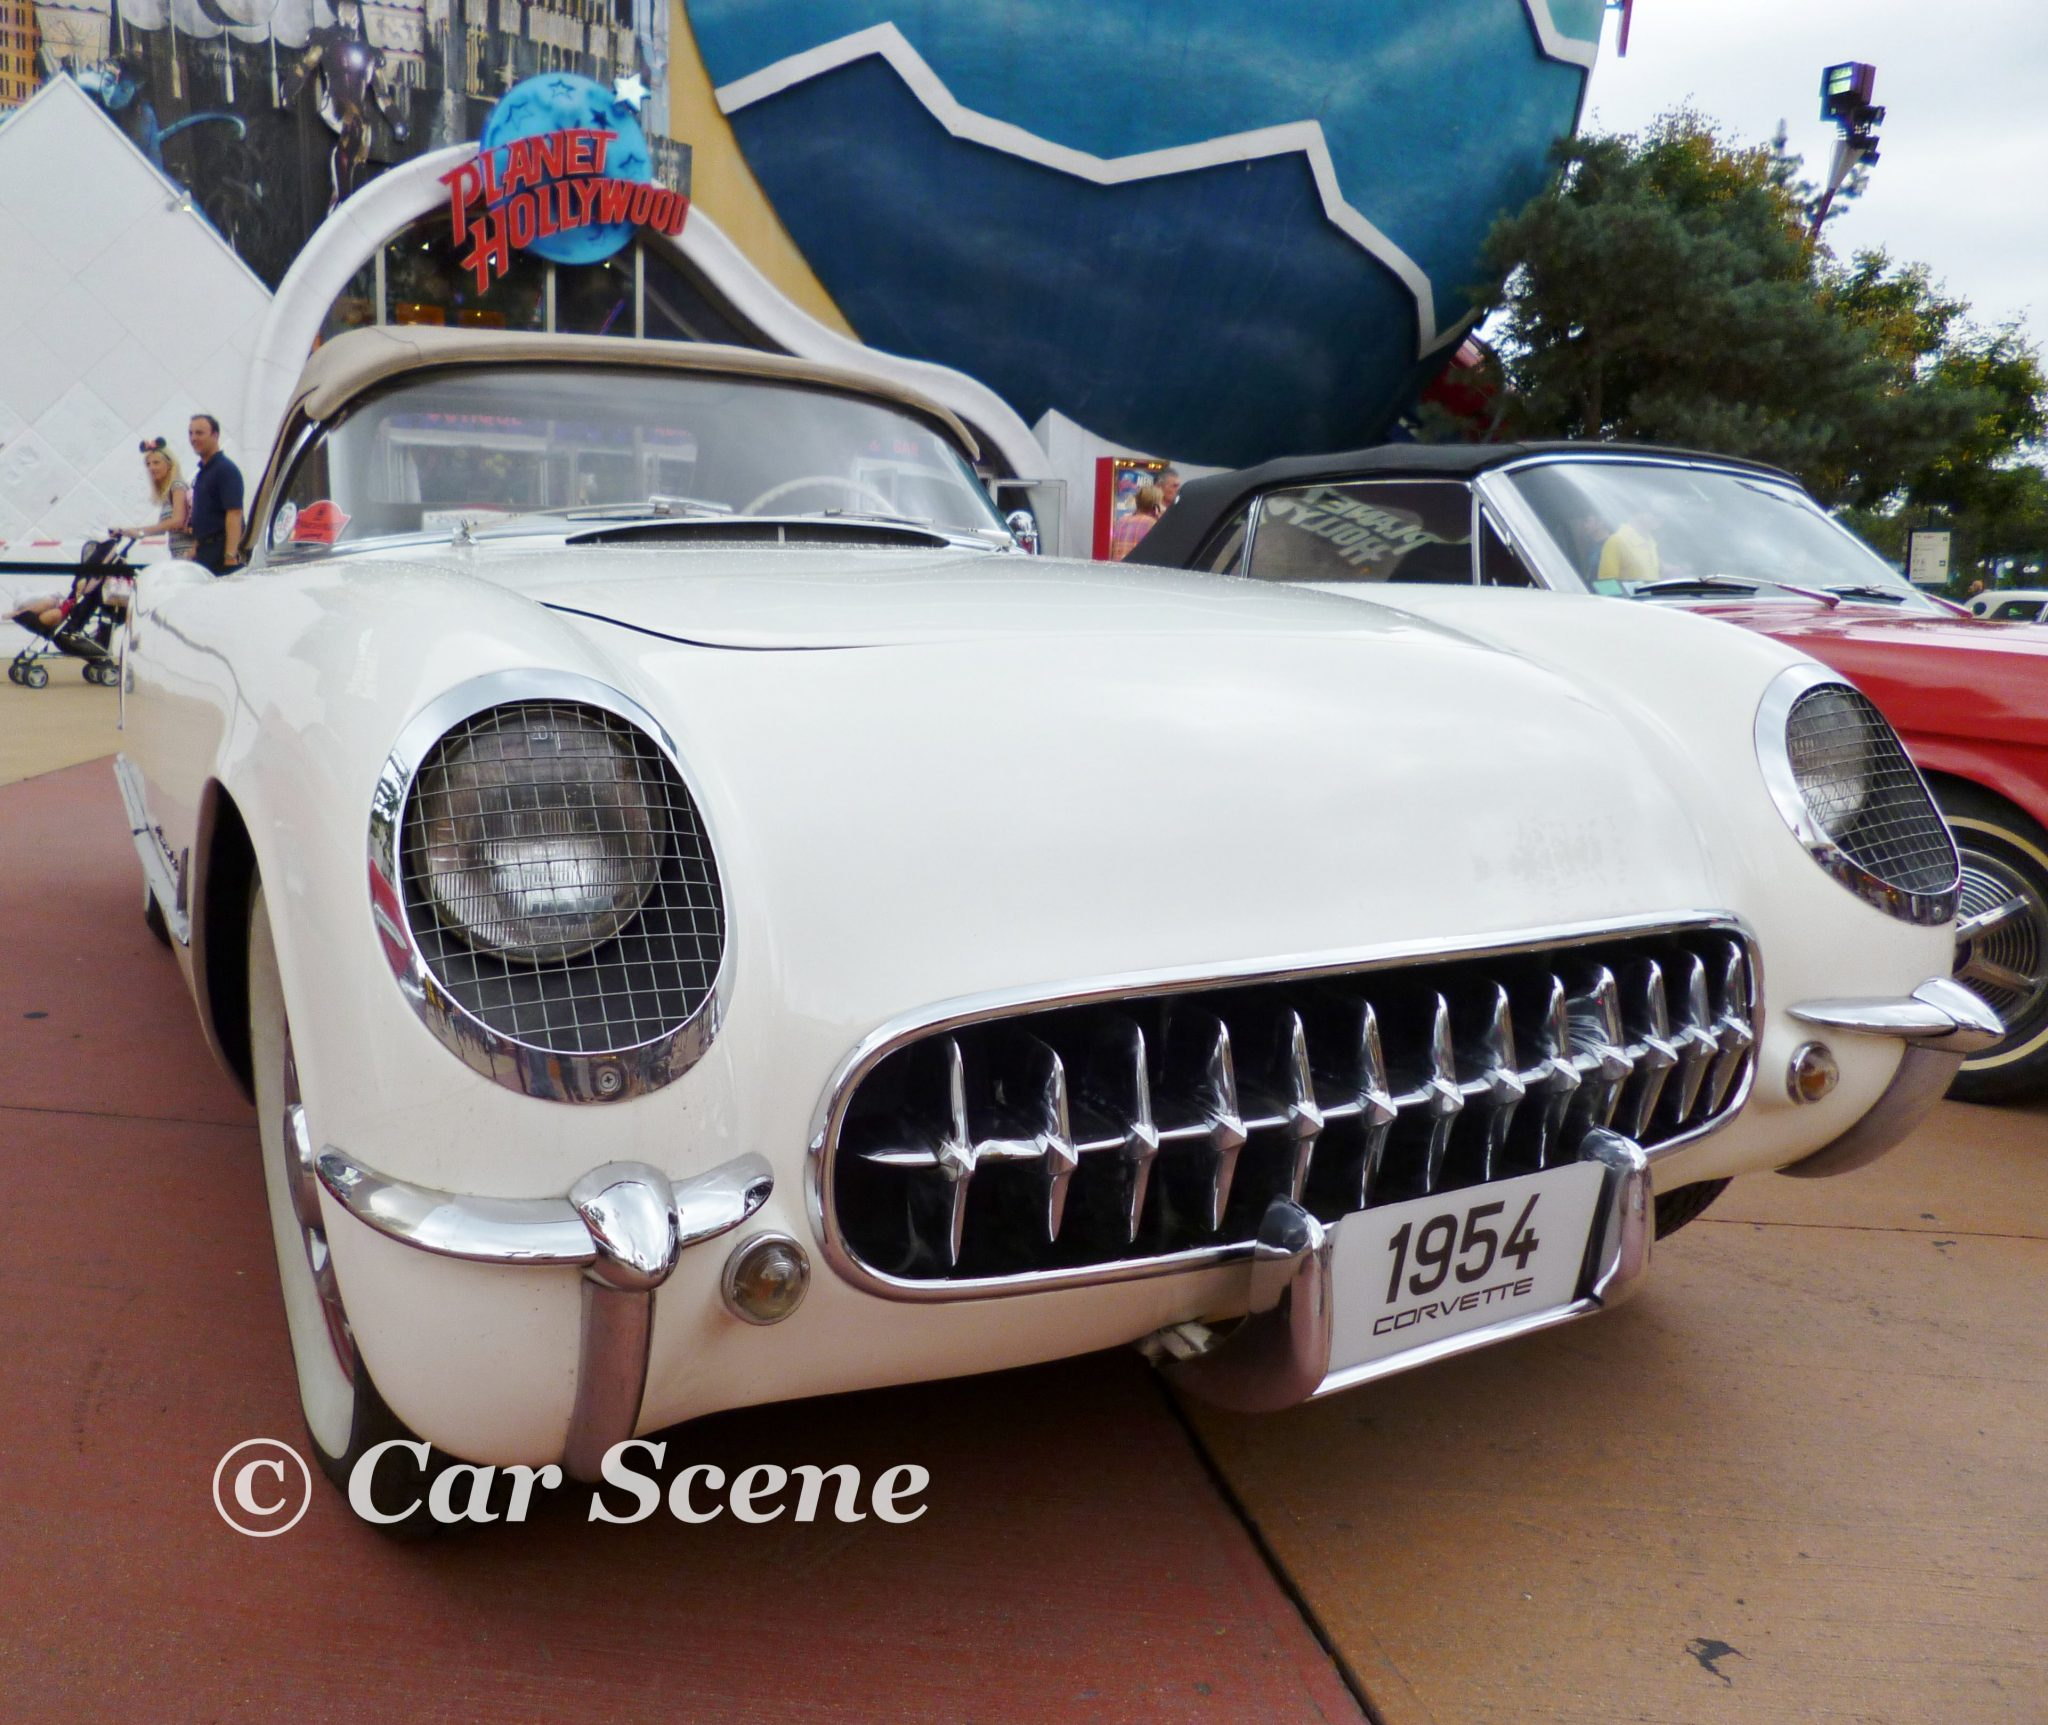 1954 Chevrolet Corvette front view